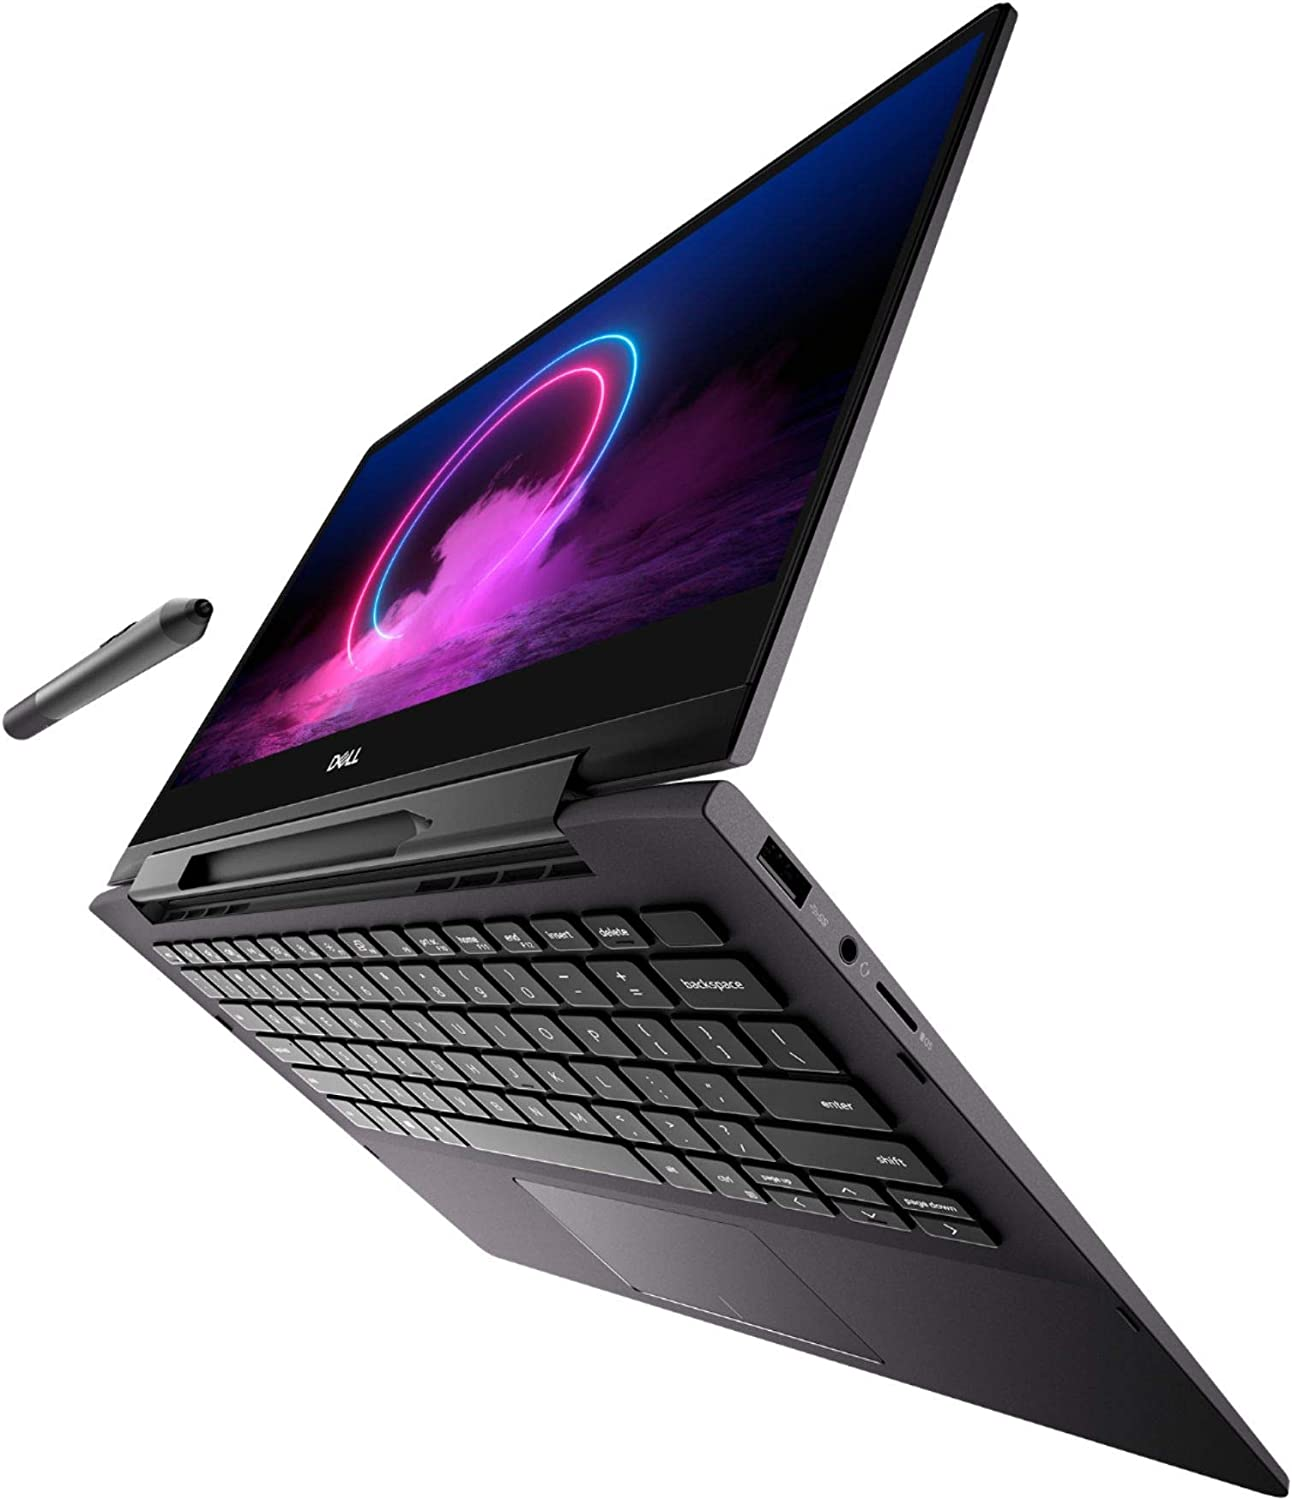 "Dell Inspiron 13 2-in-1 7391 (Late 2019 Model) 10th gen i7-10510U - 16GB - 512GB SSD 13.3"" 4K Touch Backlit Keyboard WiFi 6 AX Win 10 Home (Renewed)"